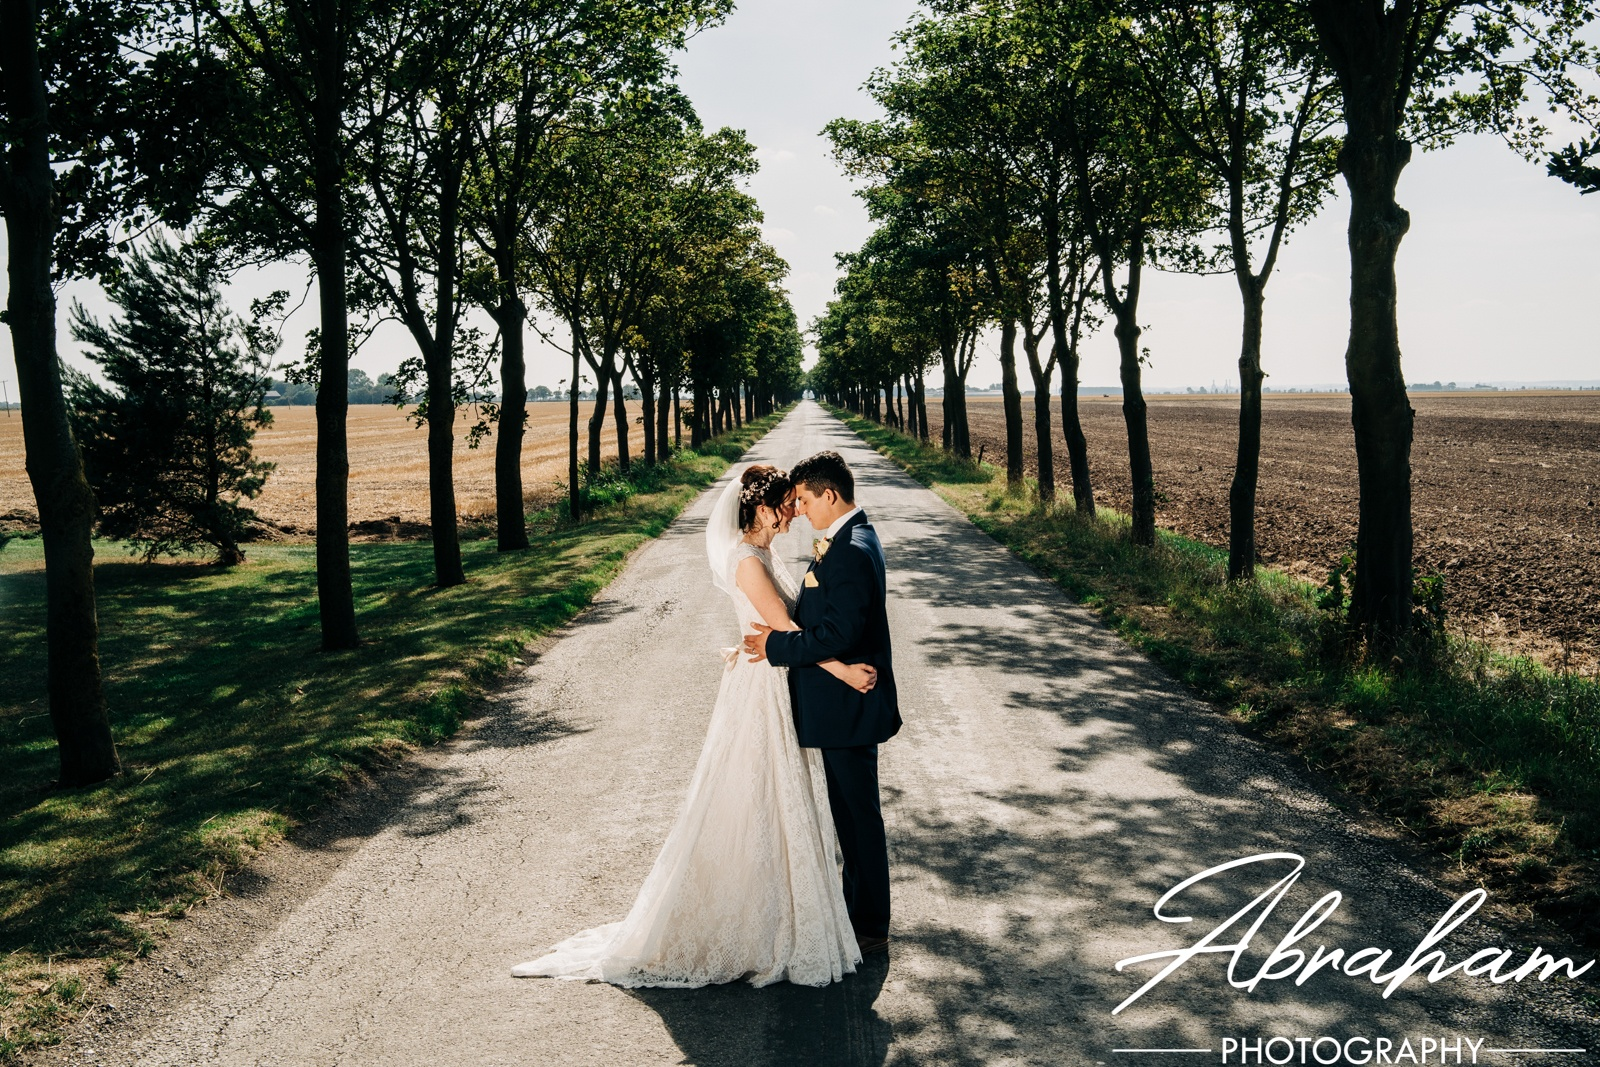 Hull Wedding Photographer | Beverley Wedding Photographer | East Yorkshire Wedding Photographer